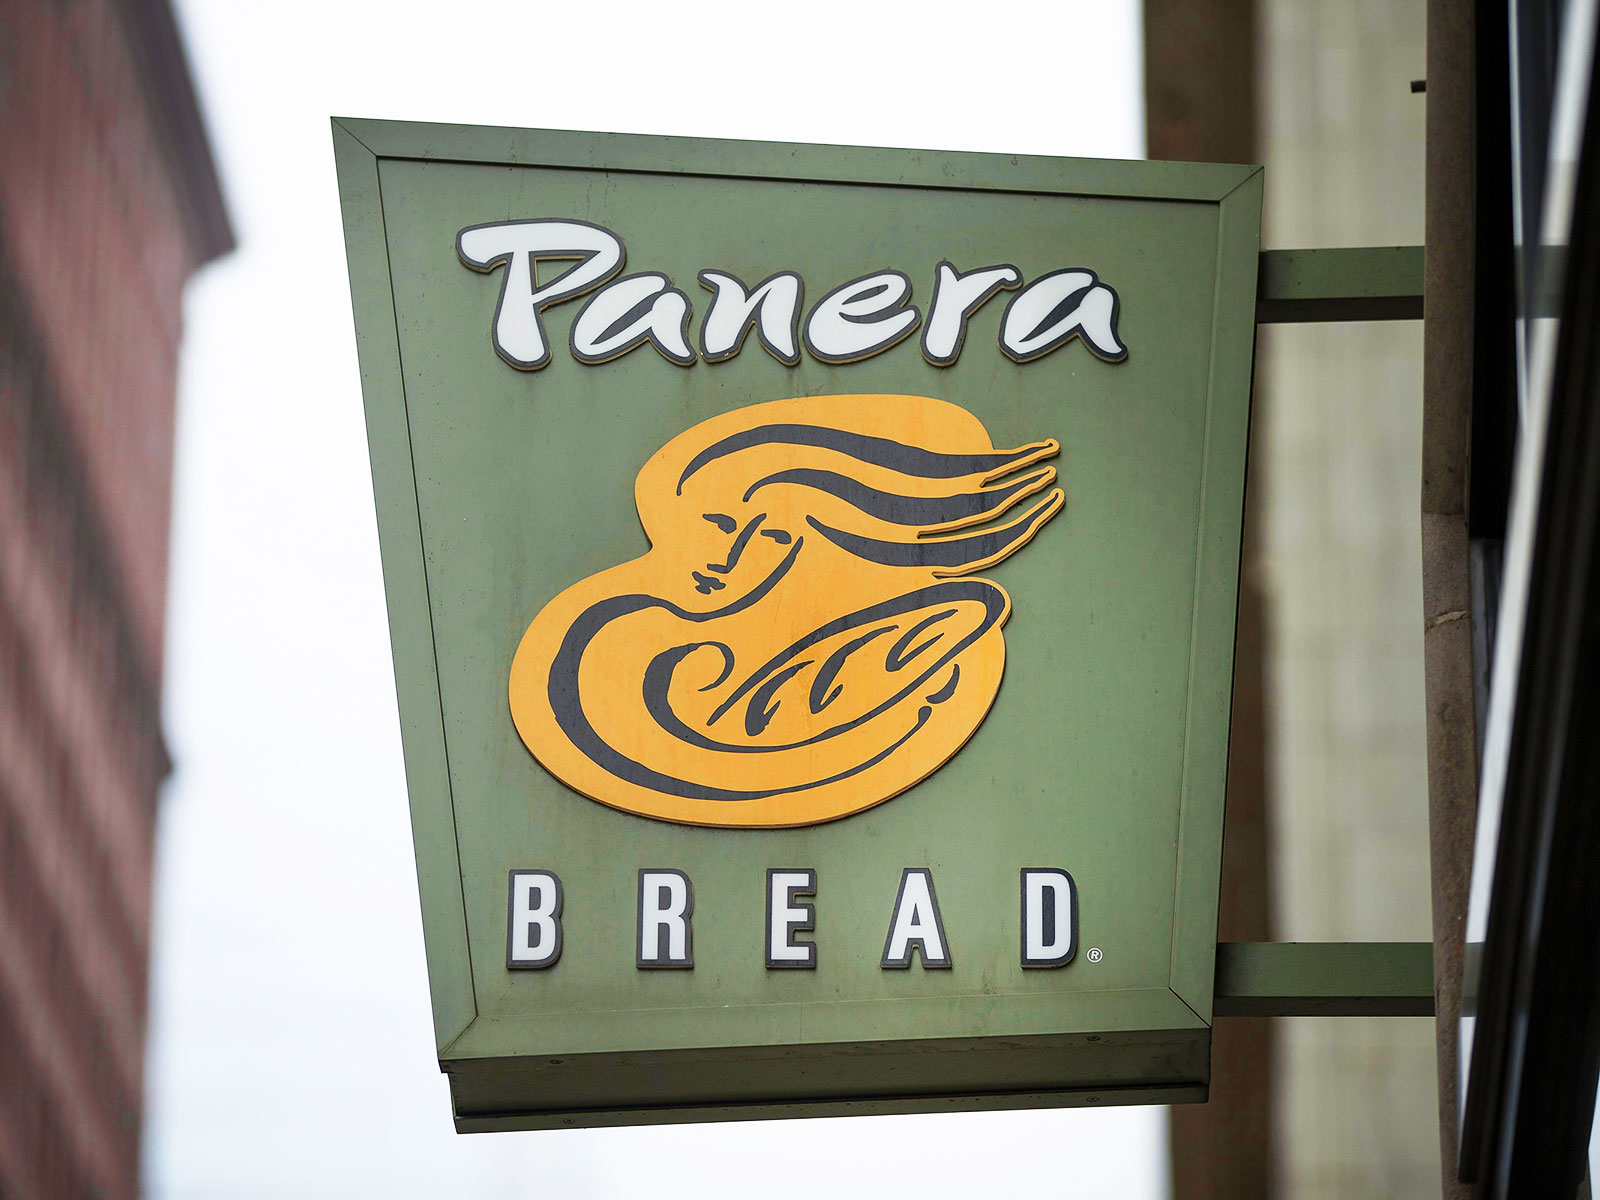 panera bread ceo